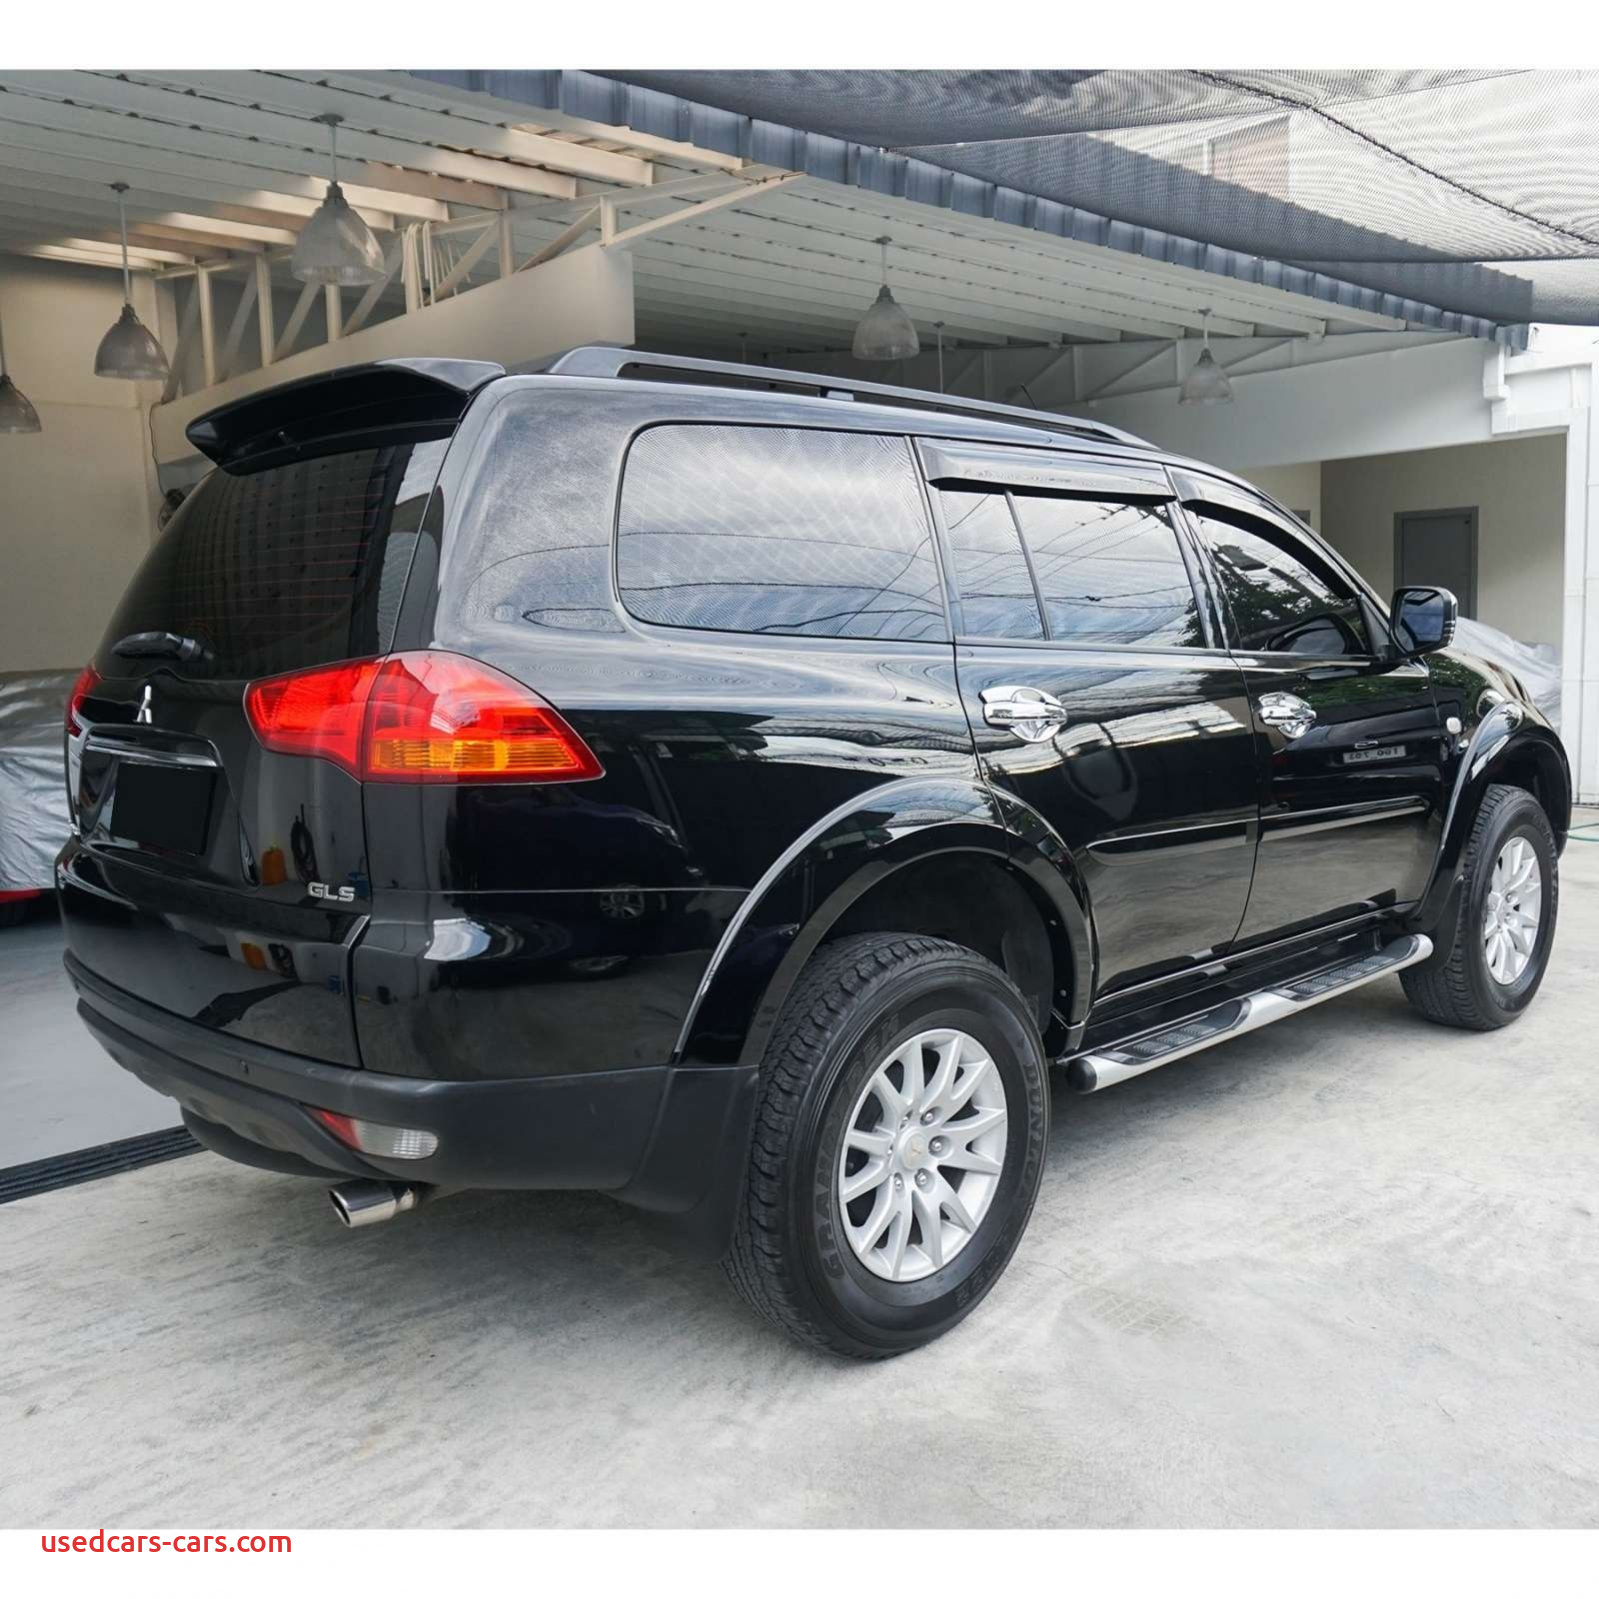 Used Cars for Sale 2010 Elegant Pin On Used Cars for Sale Manila